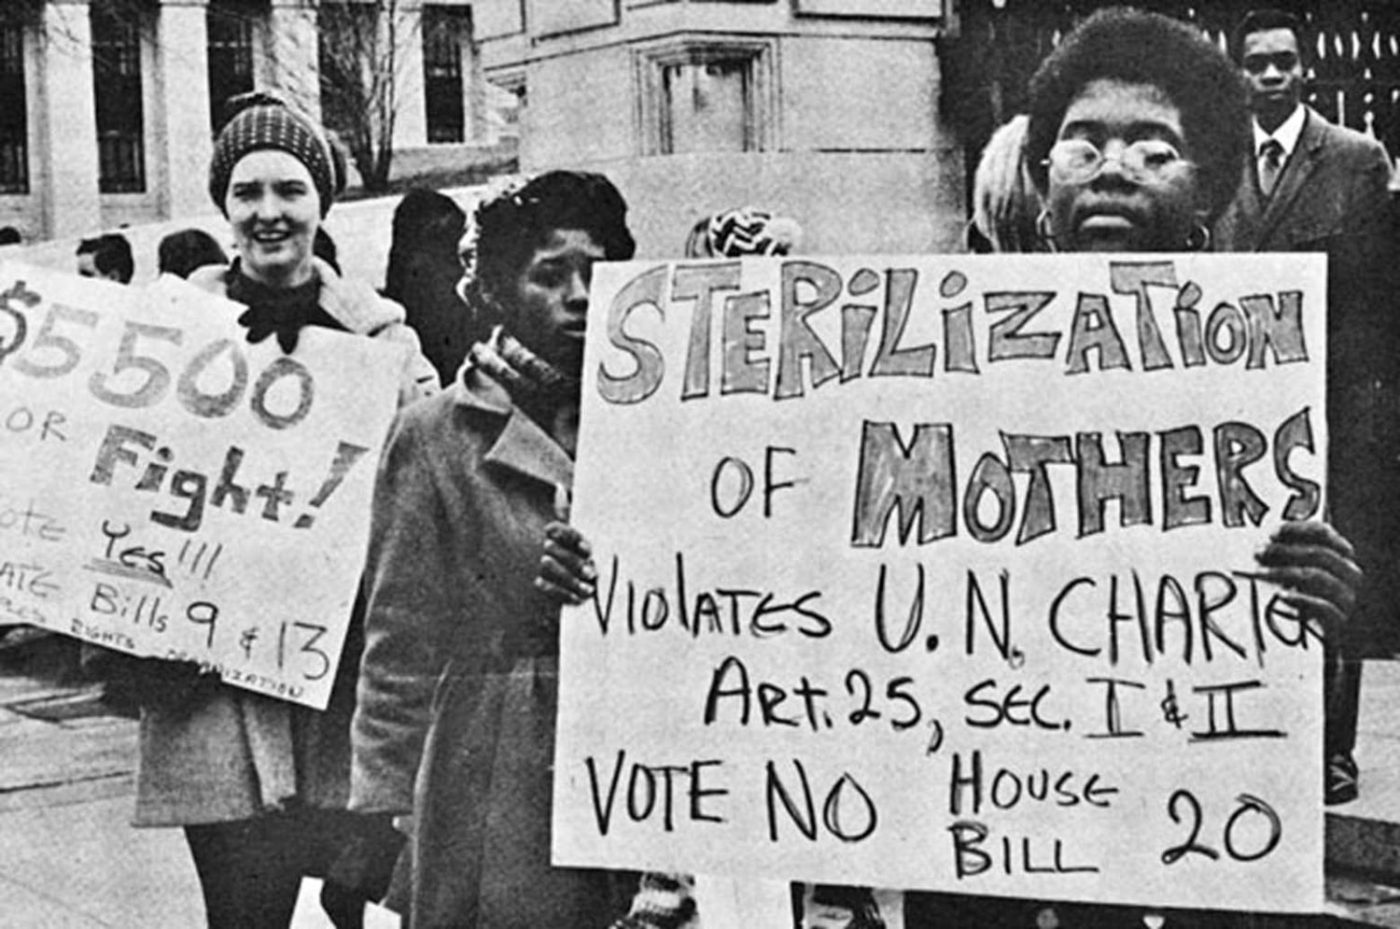 Sterilization-of-mothers-violates-UN-Charter-1971-eugenics-protestors-1400x929, The belly of the beast is orange, Behind Enemy Lines